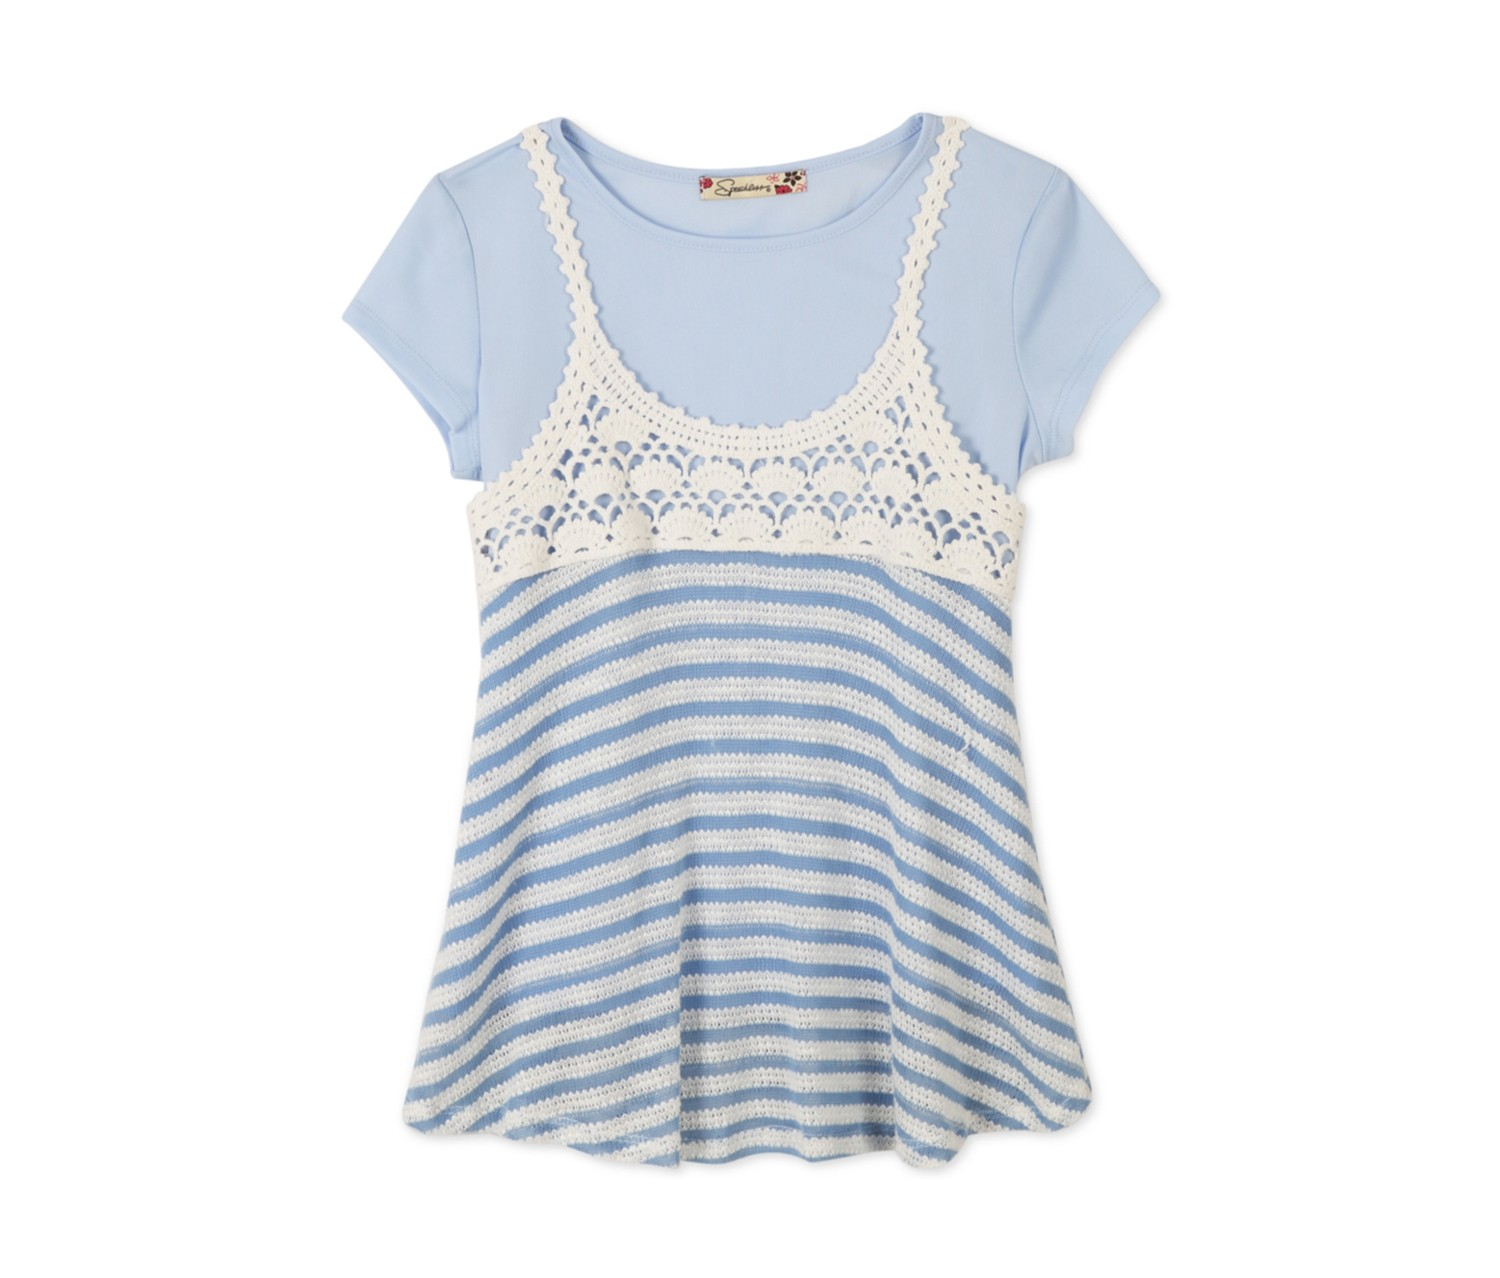 Speechless Crochet Trapeze Top T-Shirt, Pastel Blue